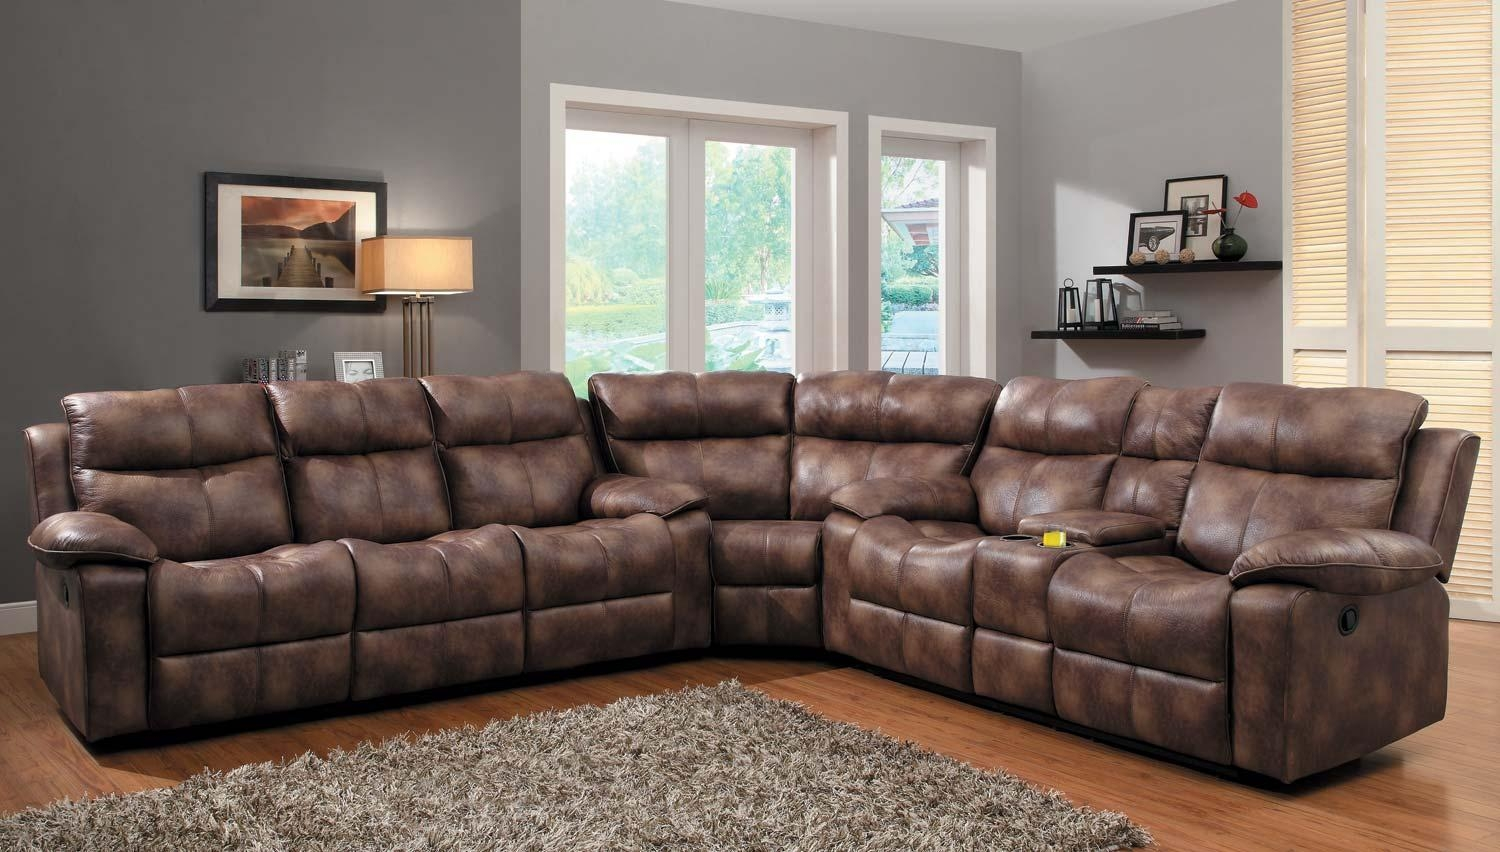 Furniture: Modular Sectional Costco | Costco Sectional Sofa Intended For Cream Sectional Leather Sofas (Image 9 of 22)